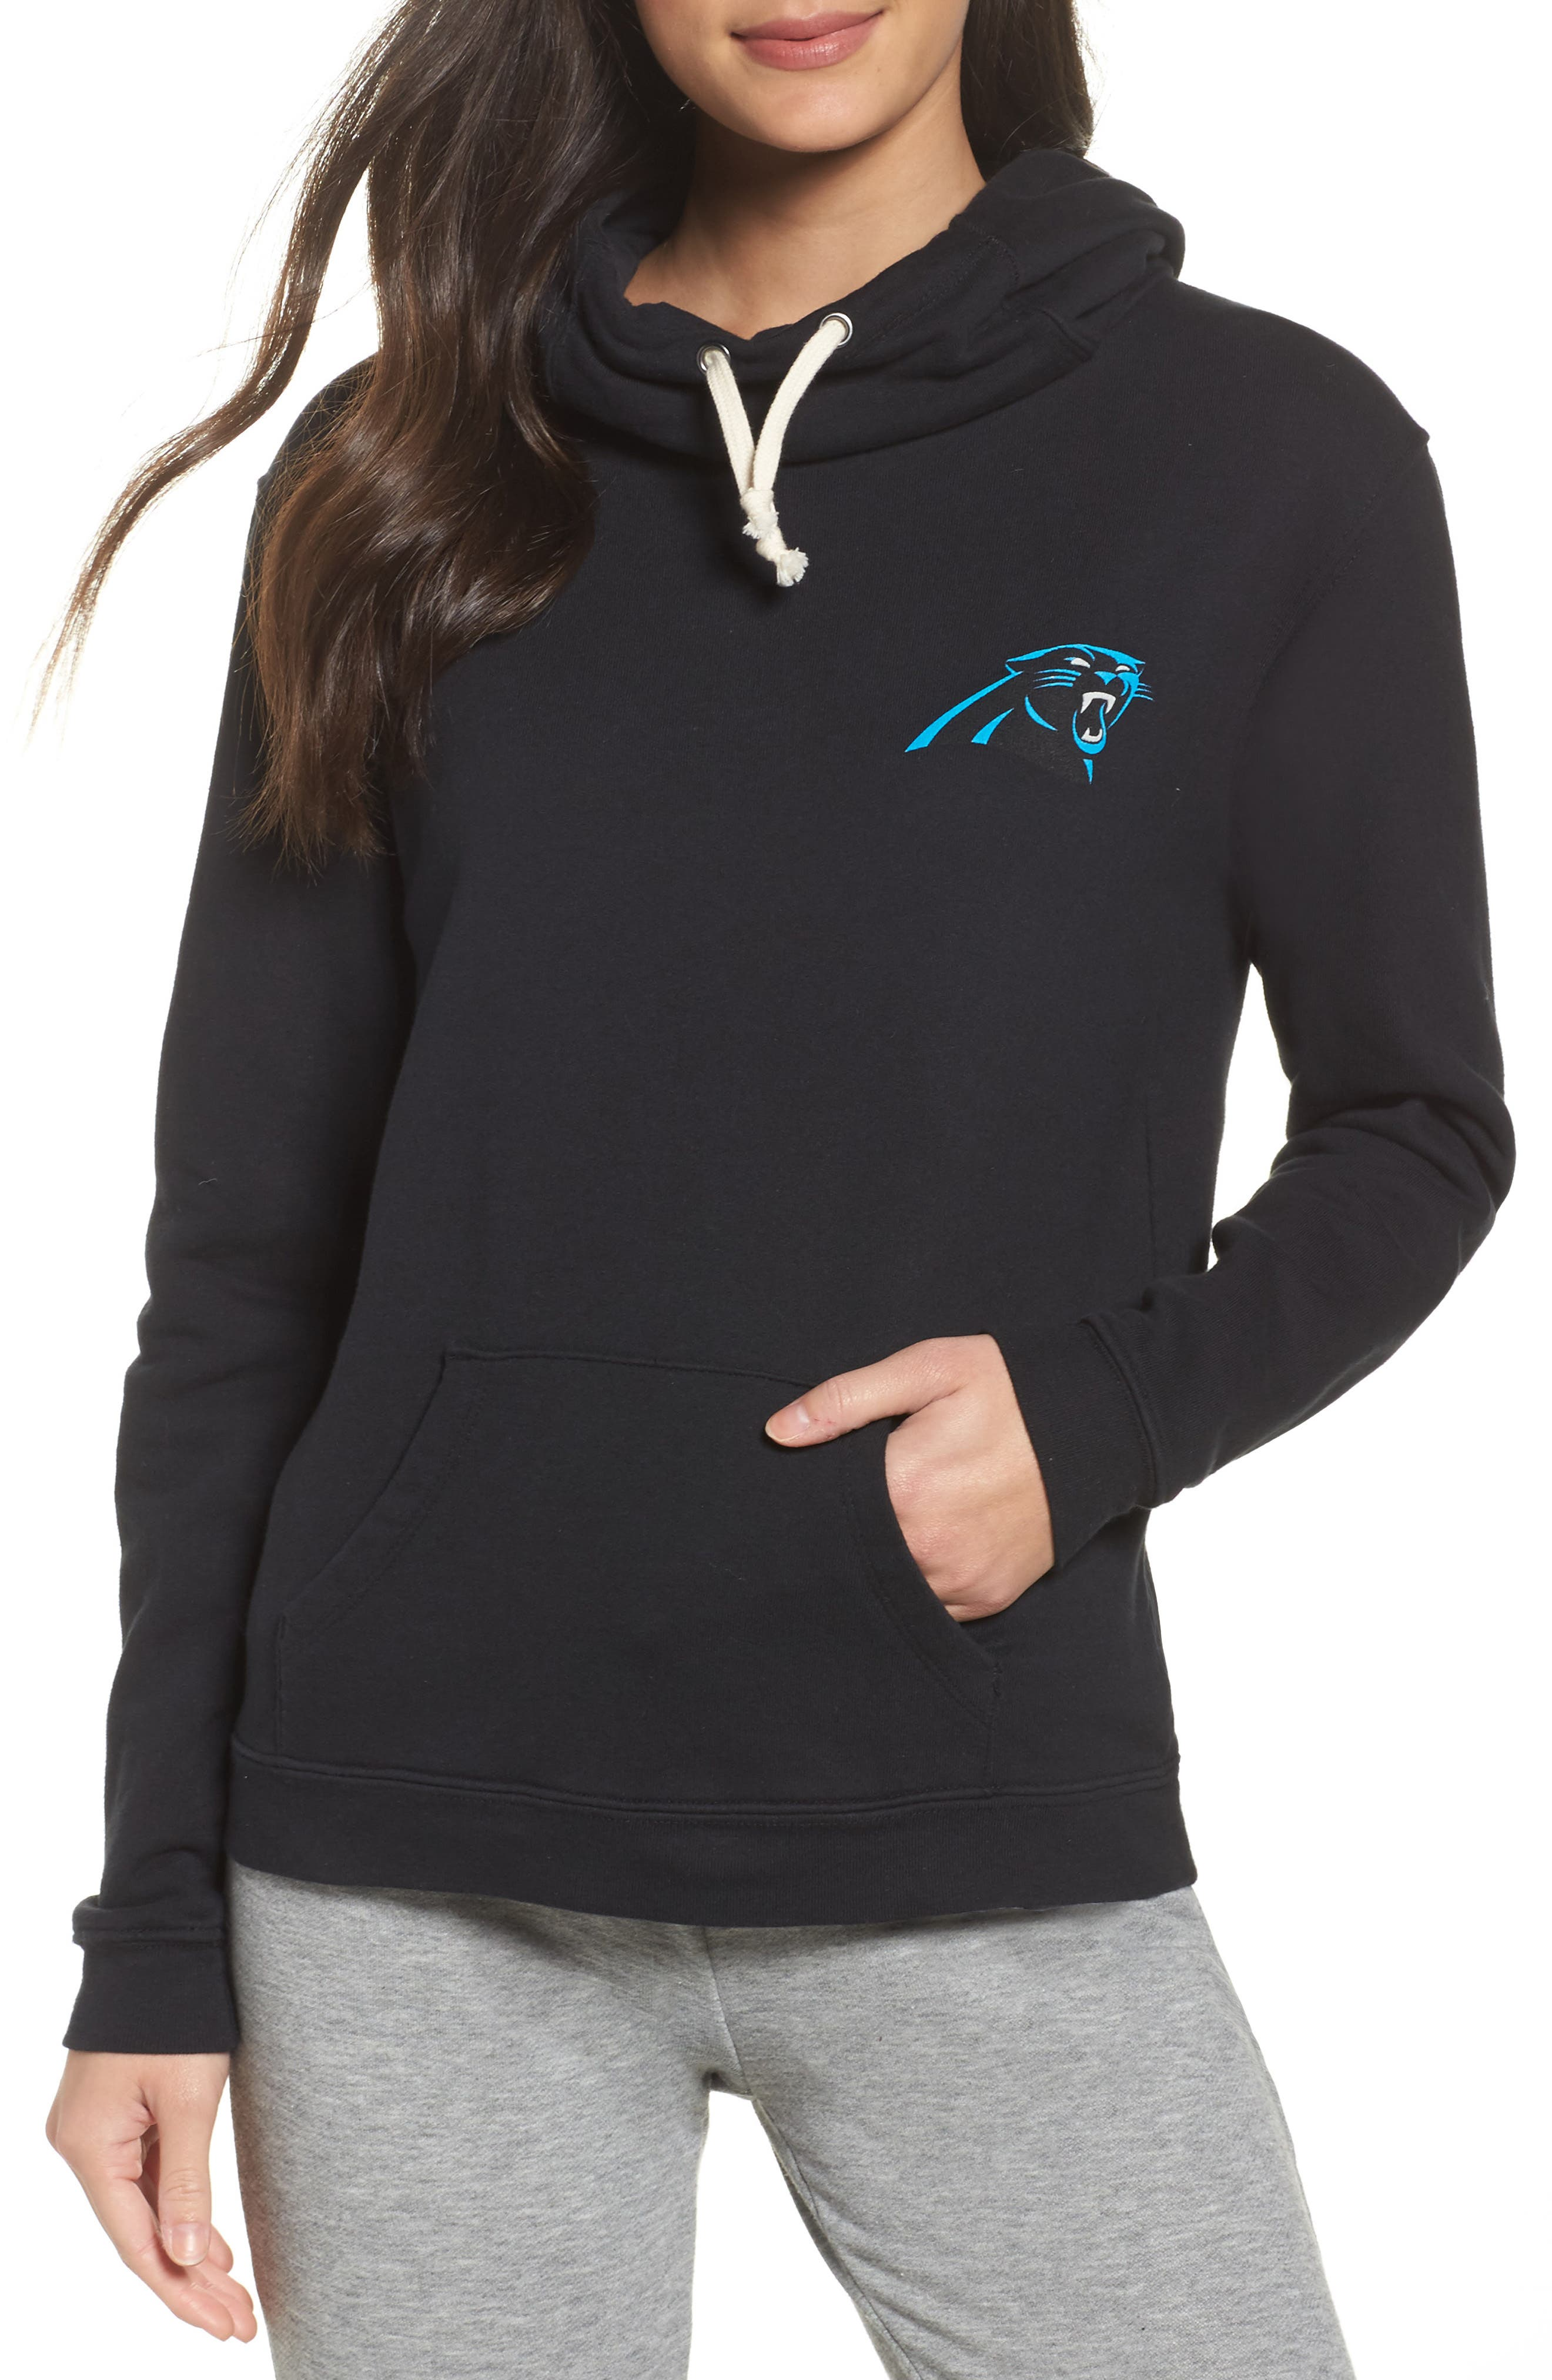 Panthers Sunday Hoodie,                             Main thumbnail 1, color,                             001